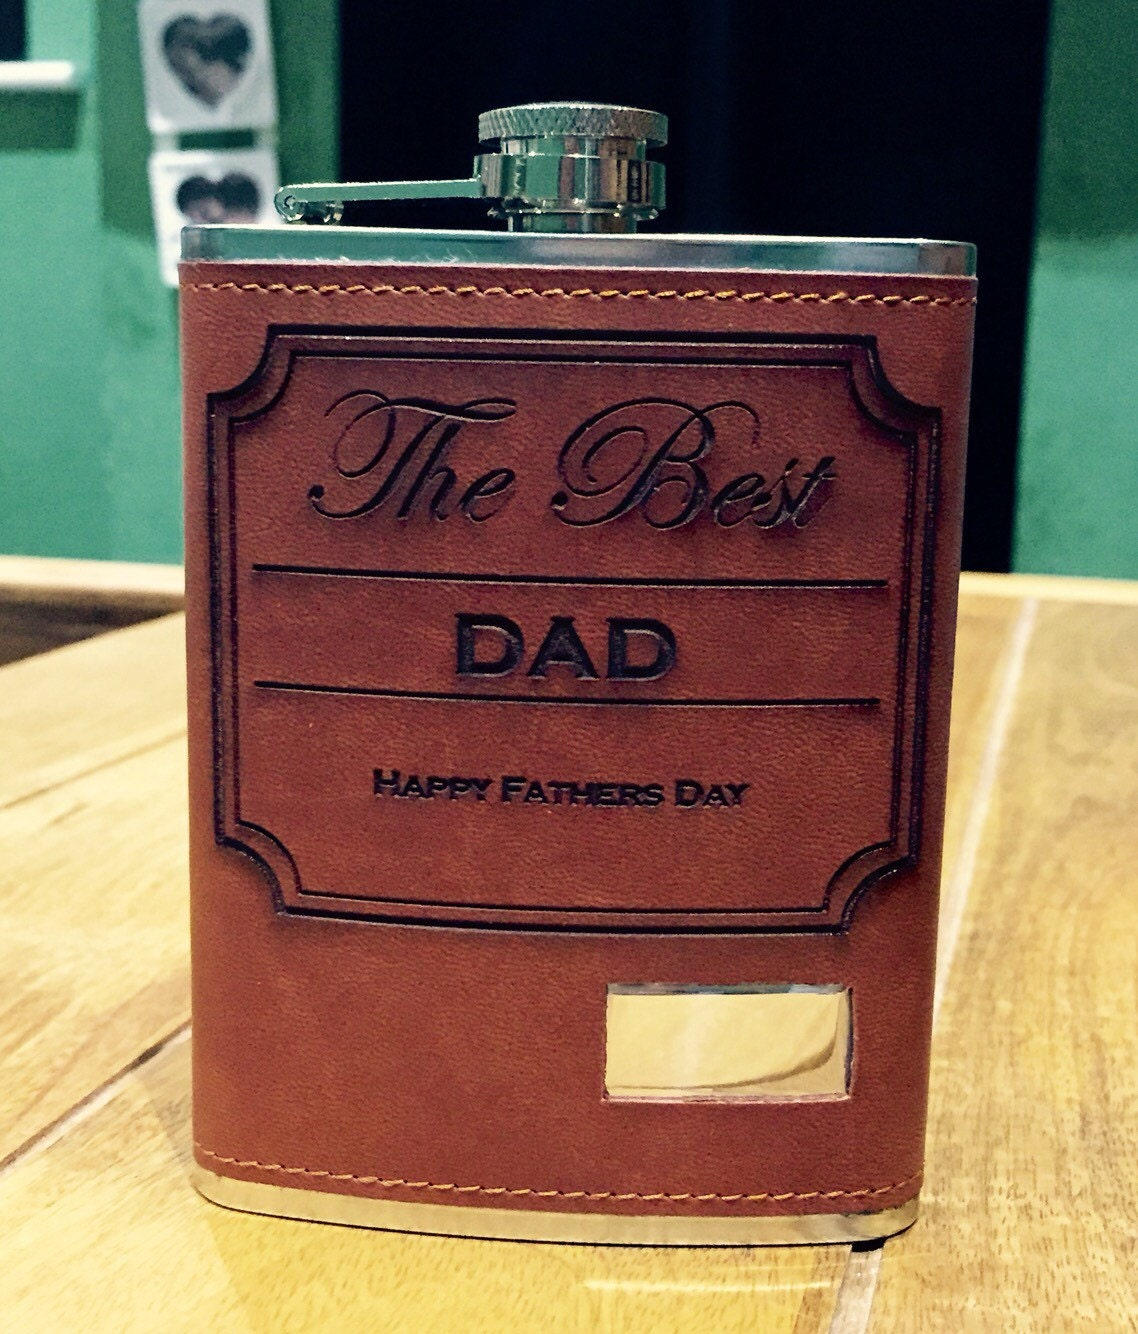 Fathers Day hip flask gift